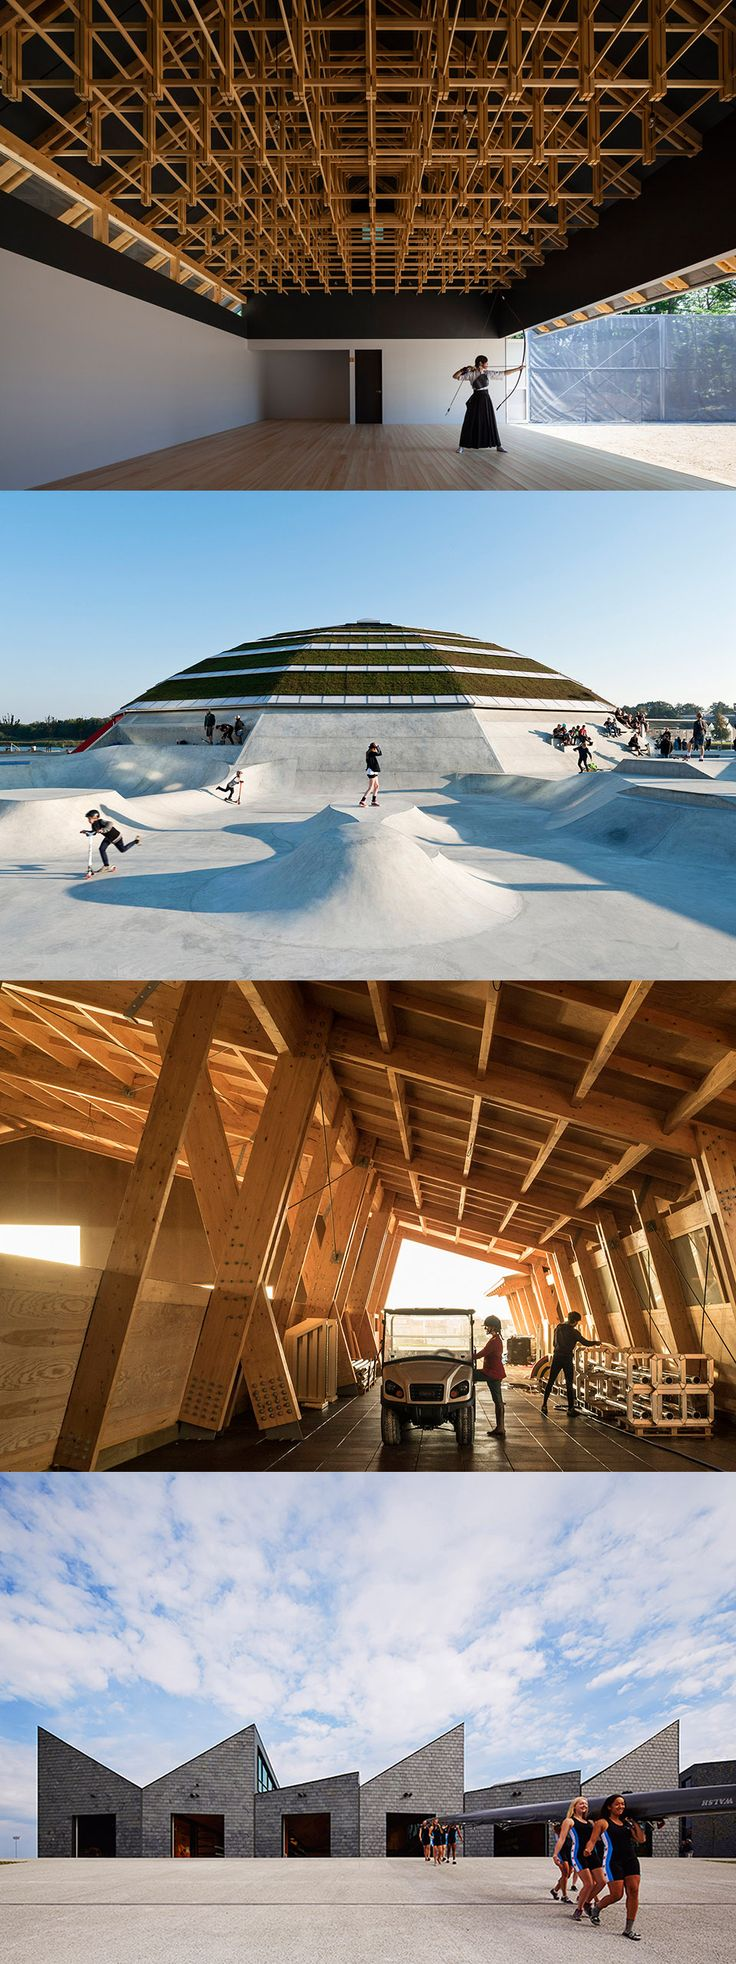 Temples of Sport: 10 incredible works of sports facility design from around the…